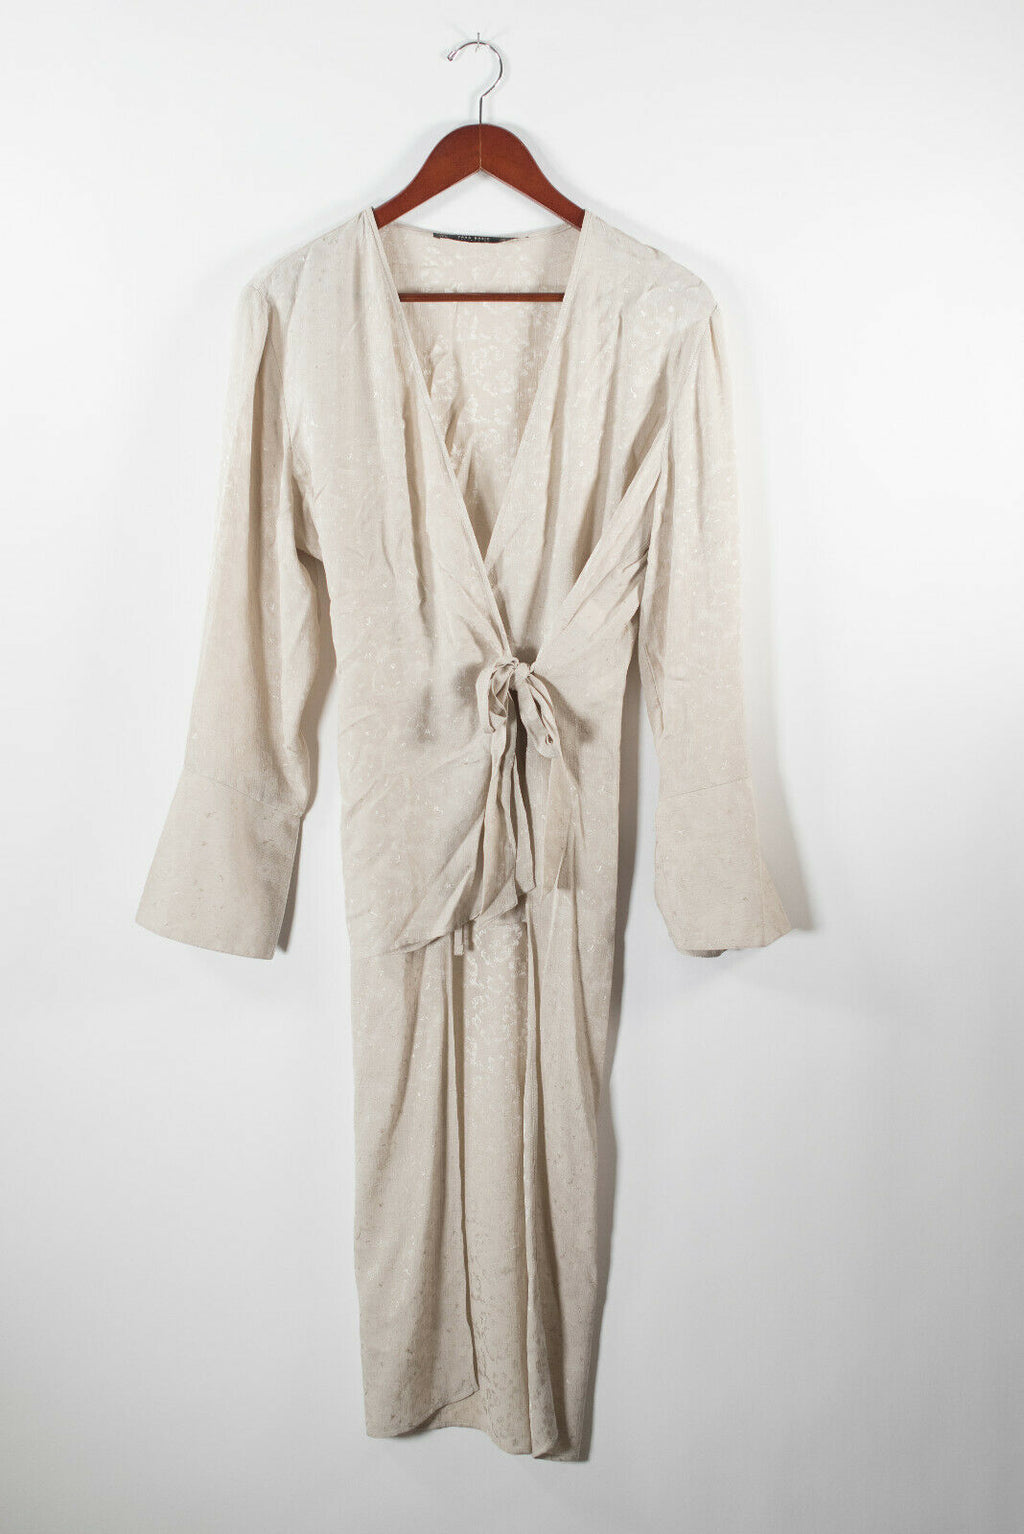 Zara Basic Womens Large Beige Tunic Duster Jacket Floral Hi Low Wrap Tie Coat